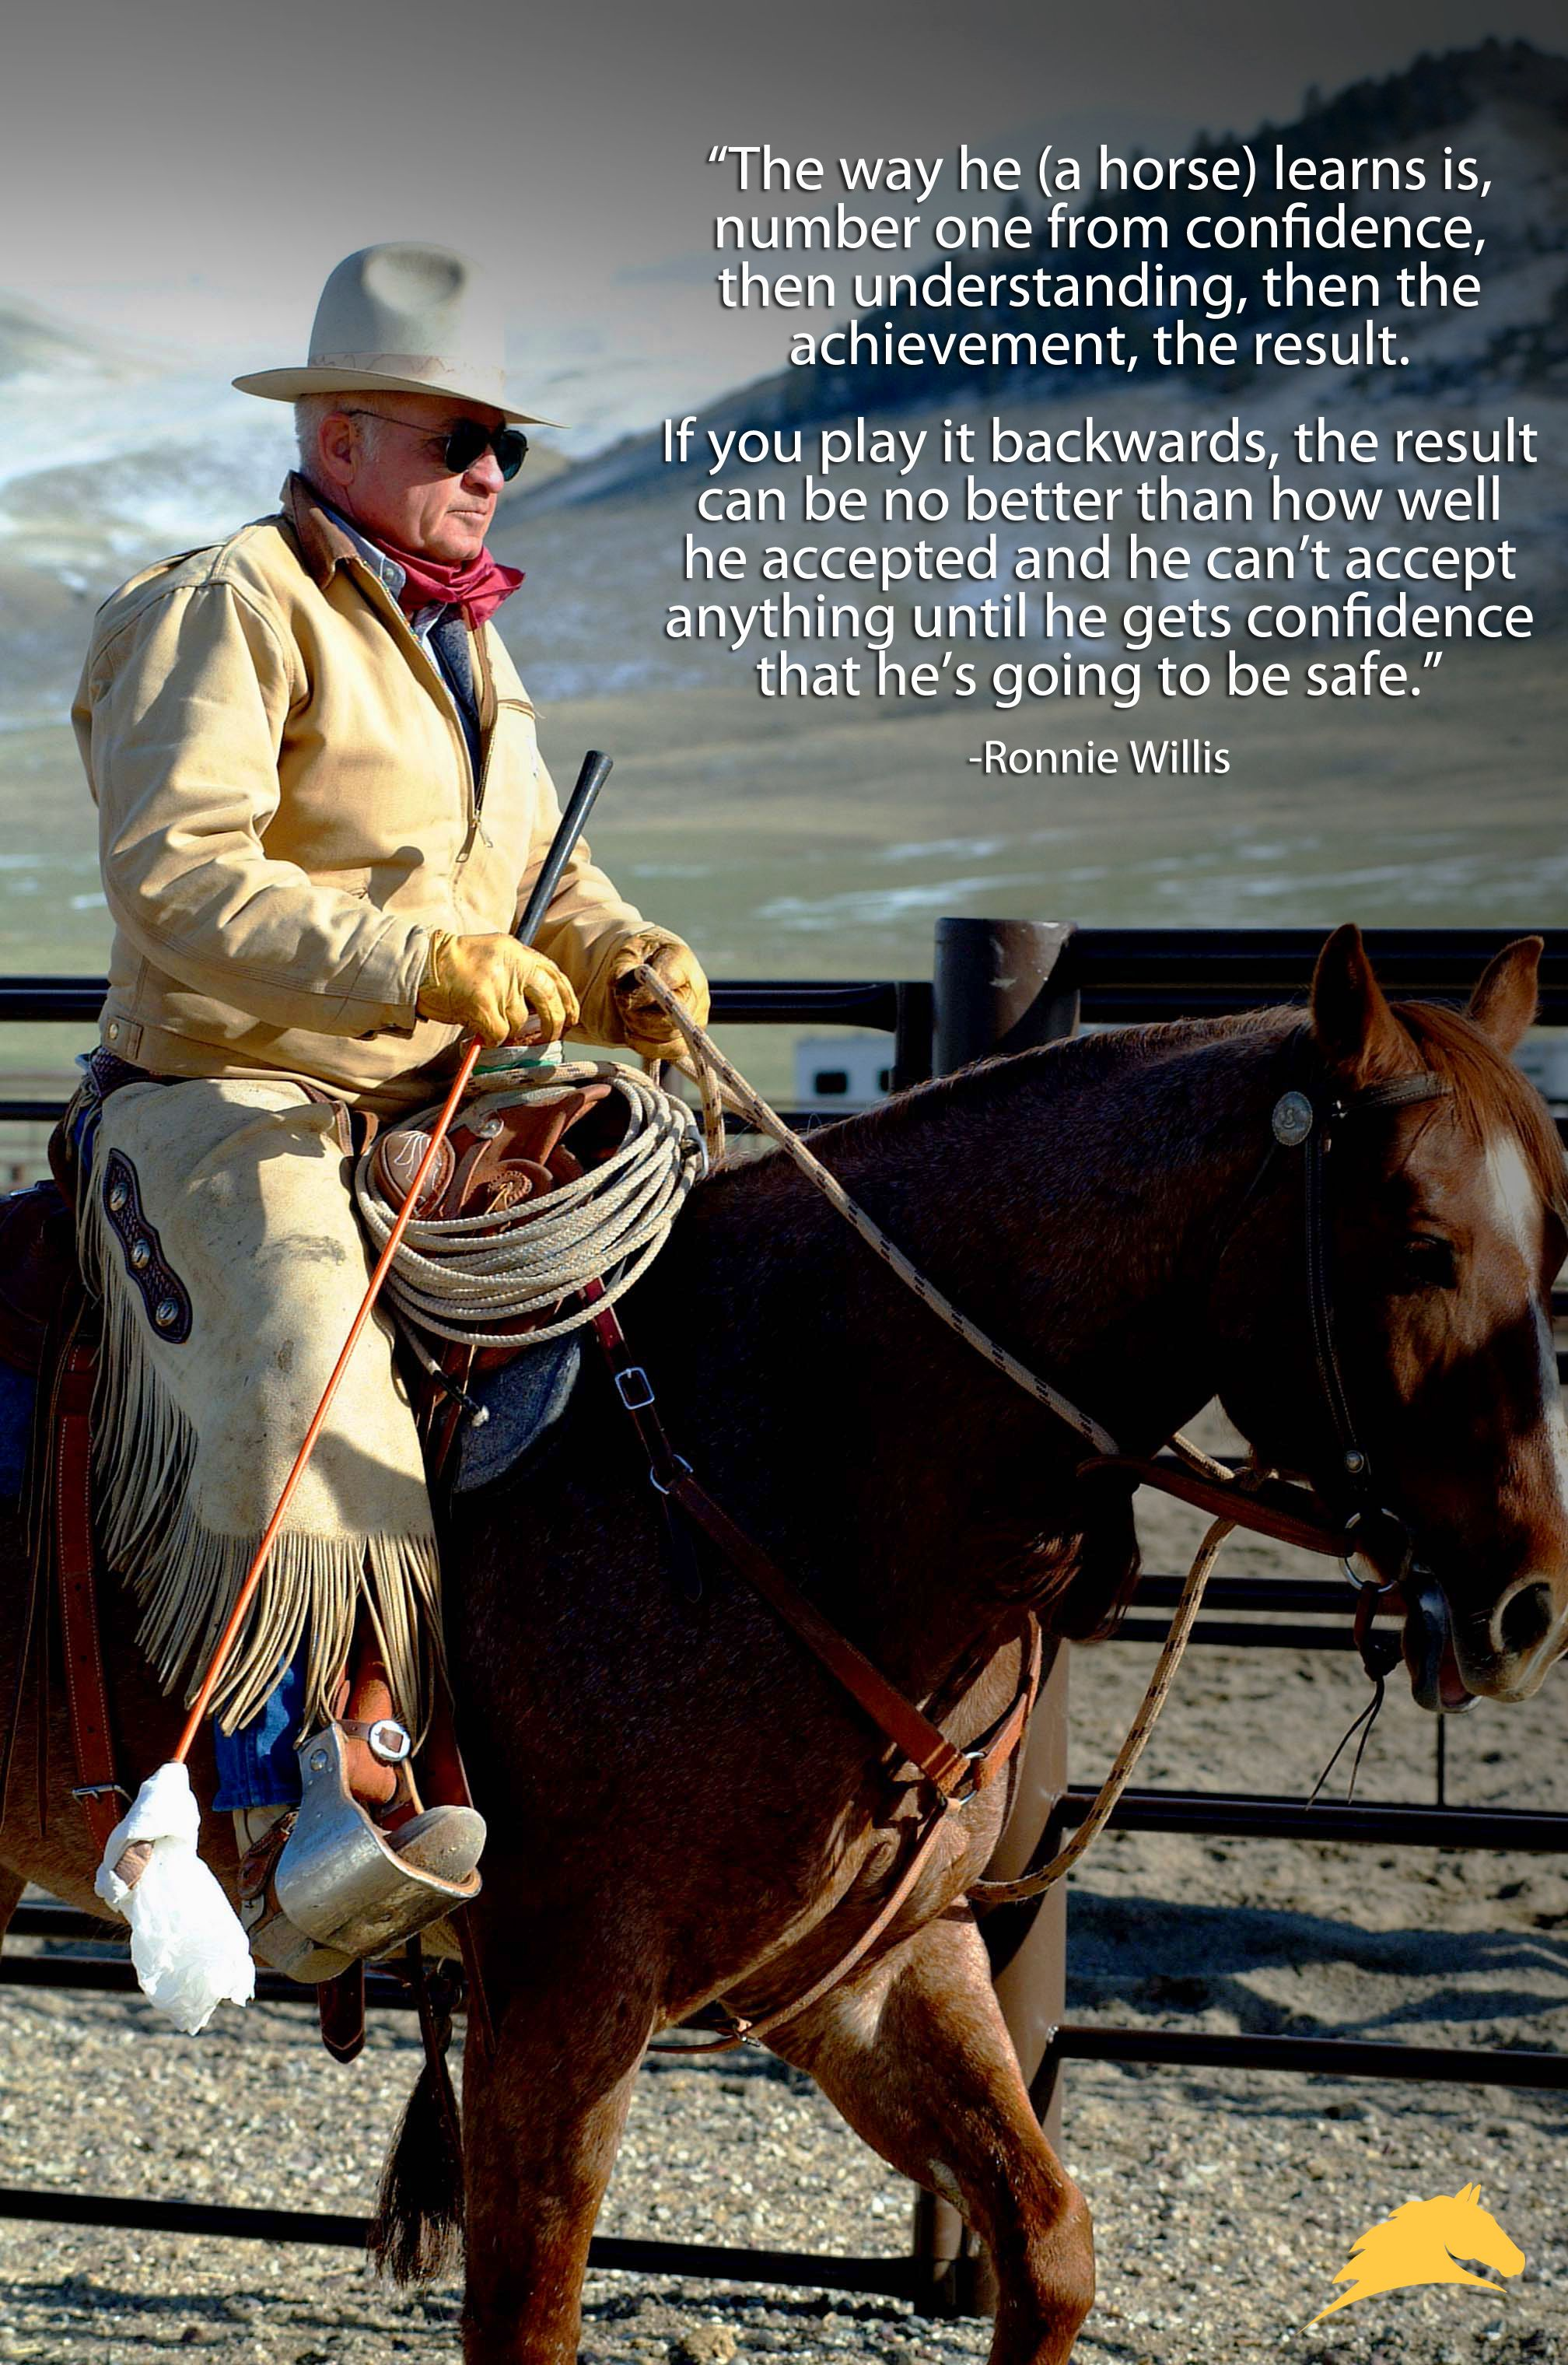 Wise words from master horseman, Ronnie Willis.